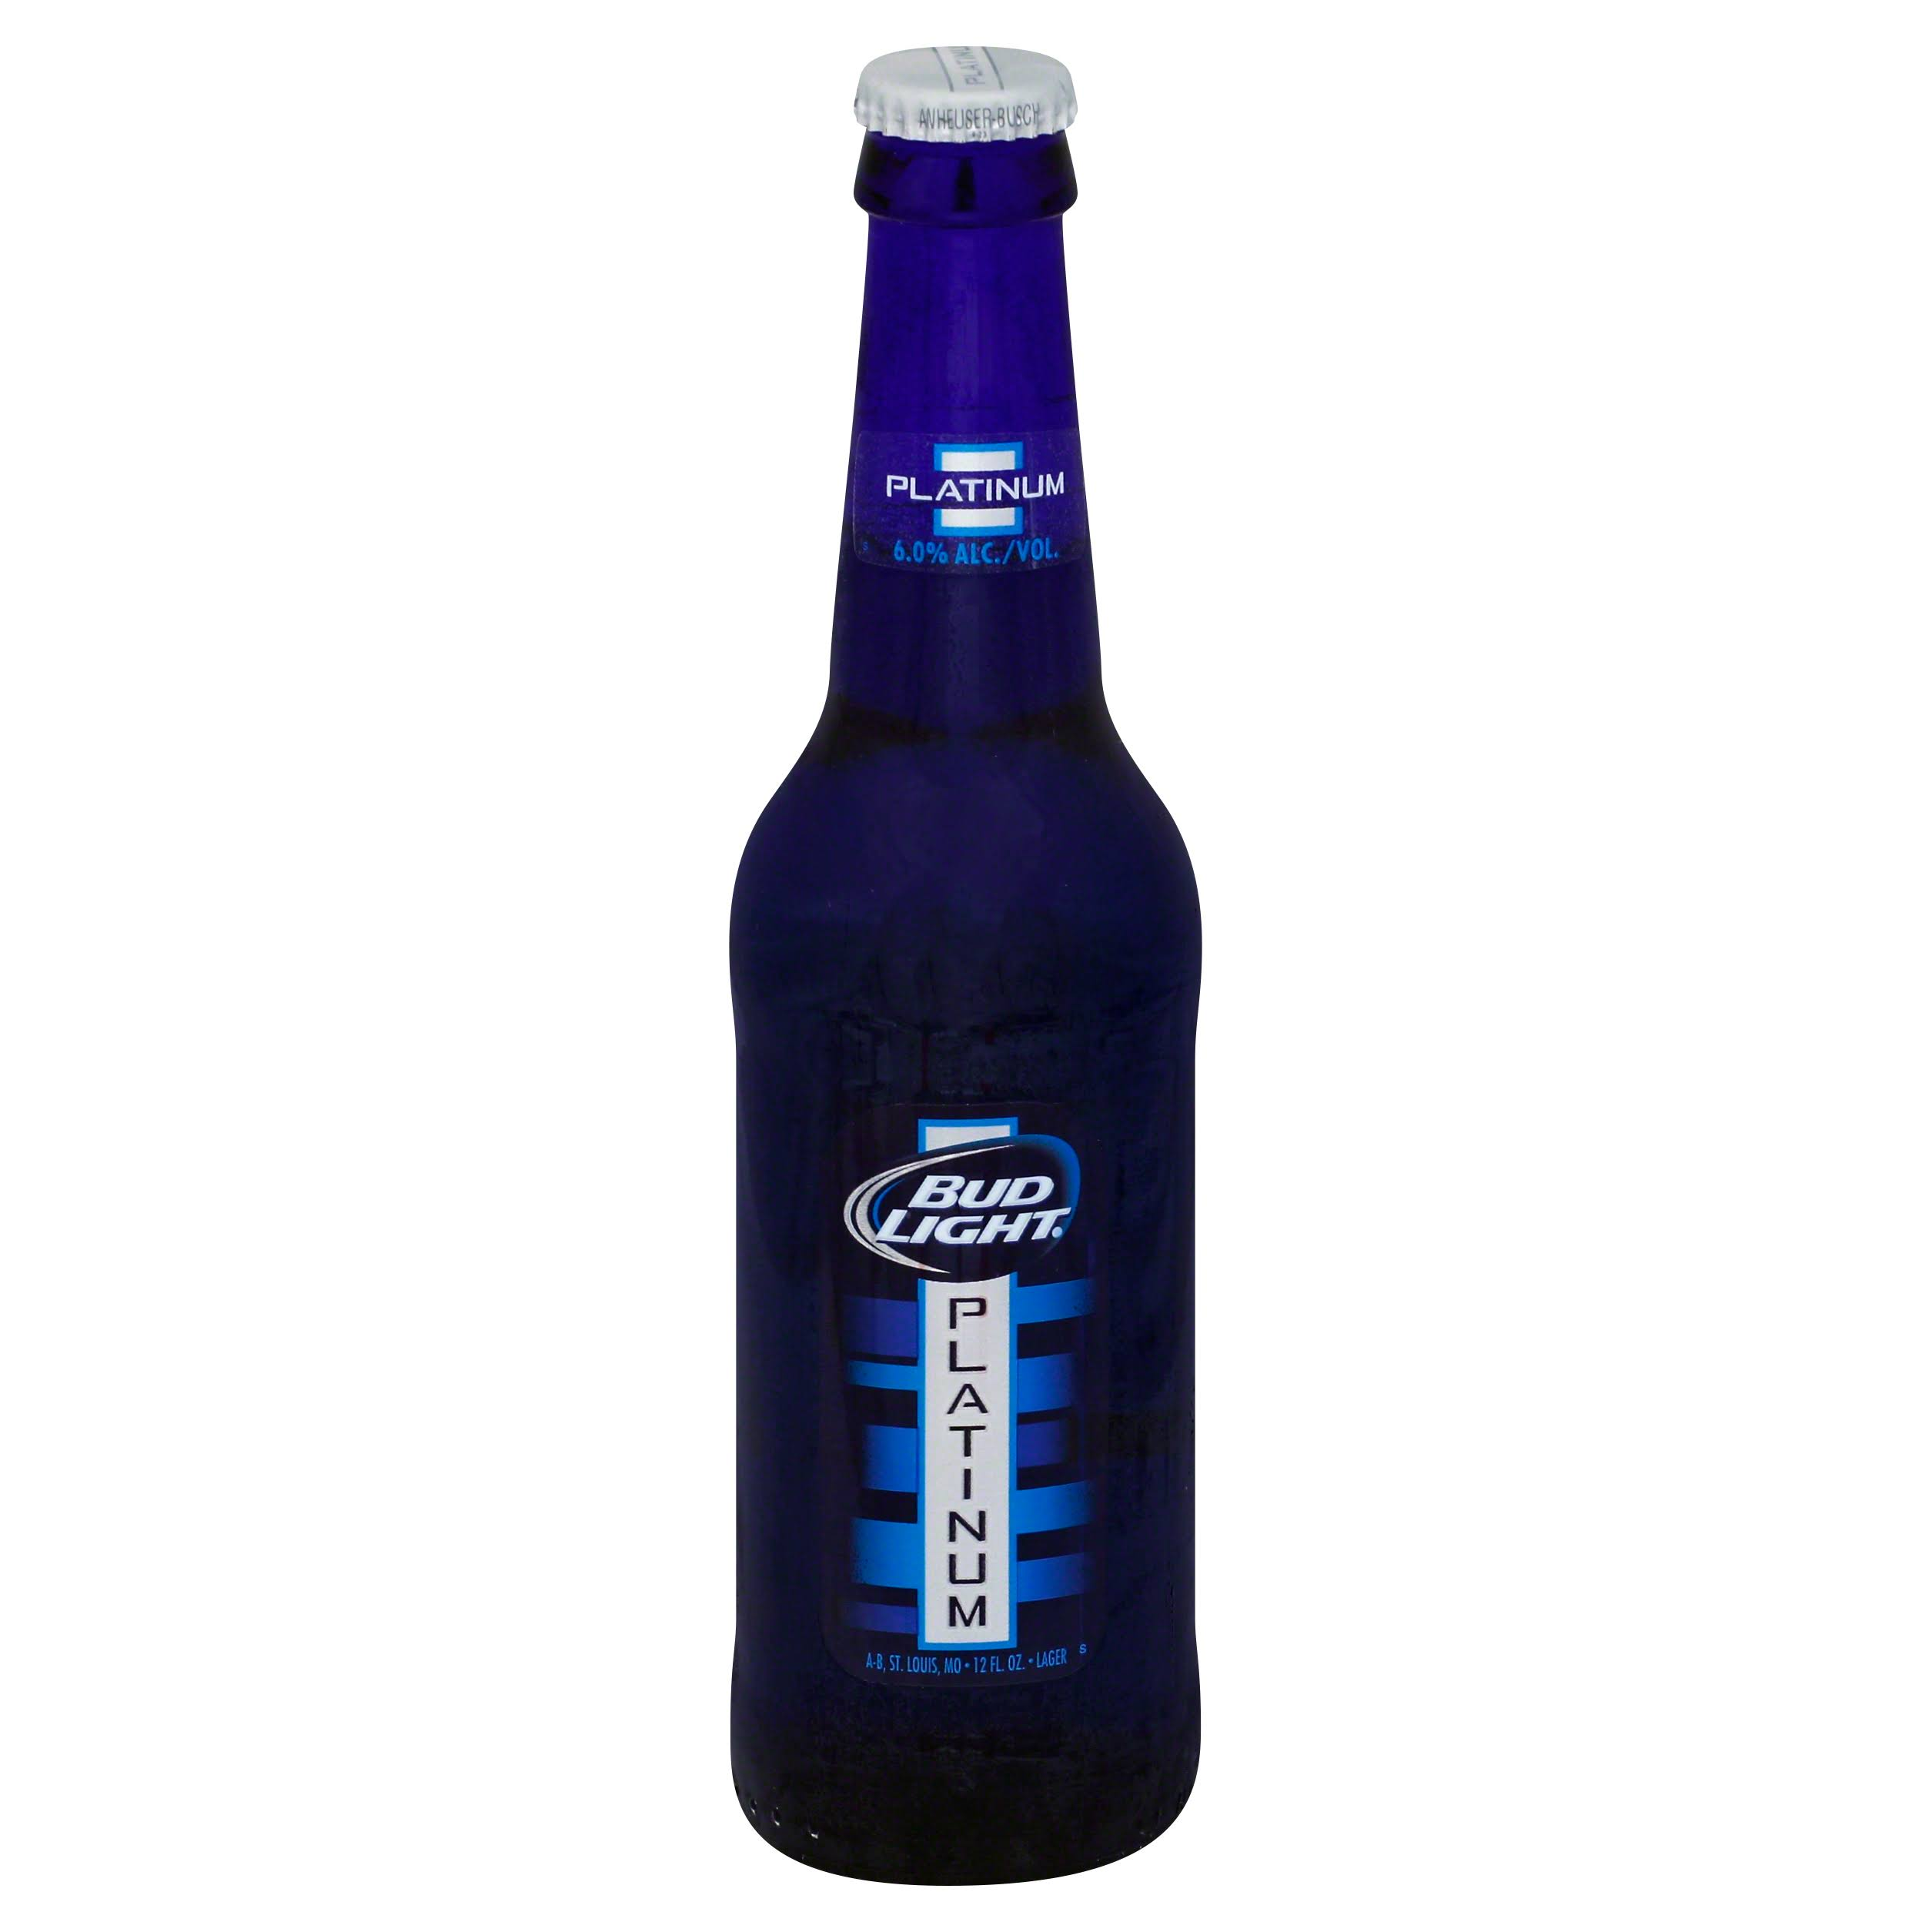 Bud Light Beer, Lager, Platinum - 12 fl oz